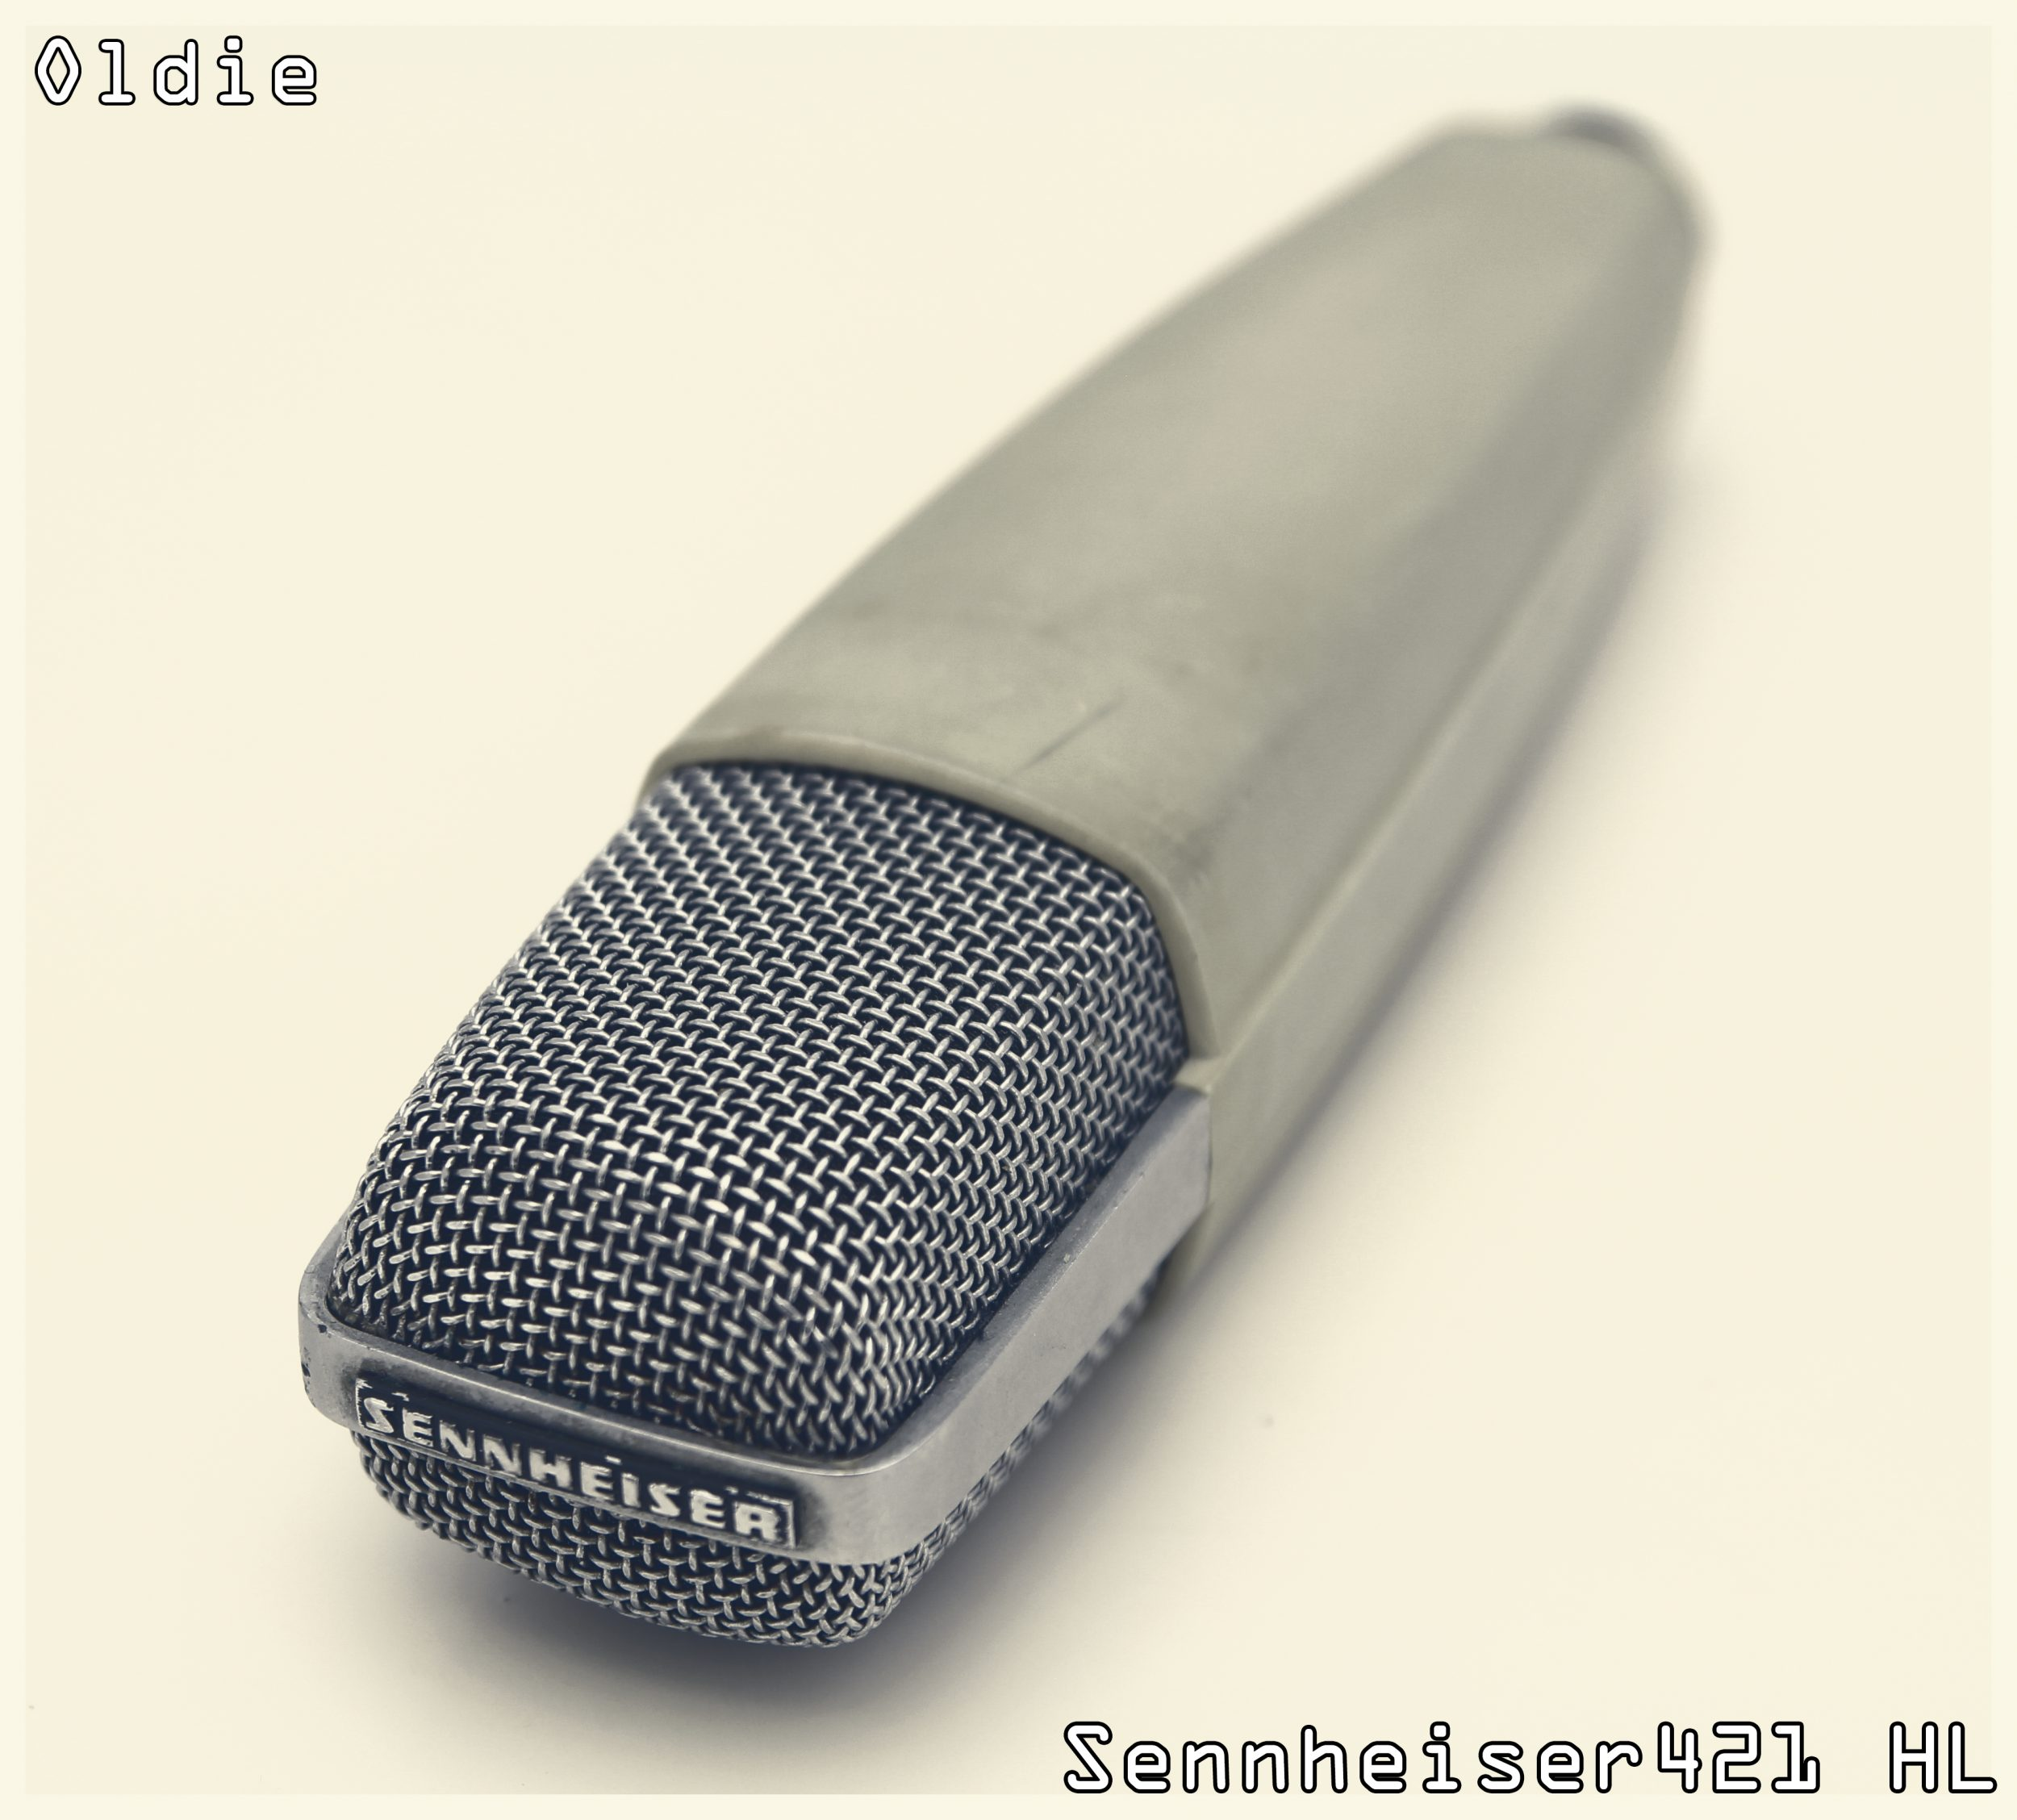 Sennheiser 421 HL (Mikrofon) #Oldie but #Goldie